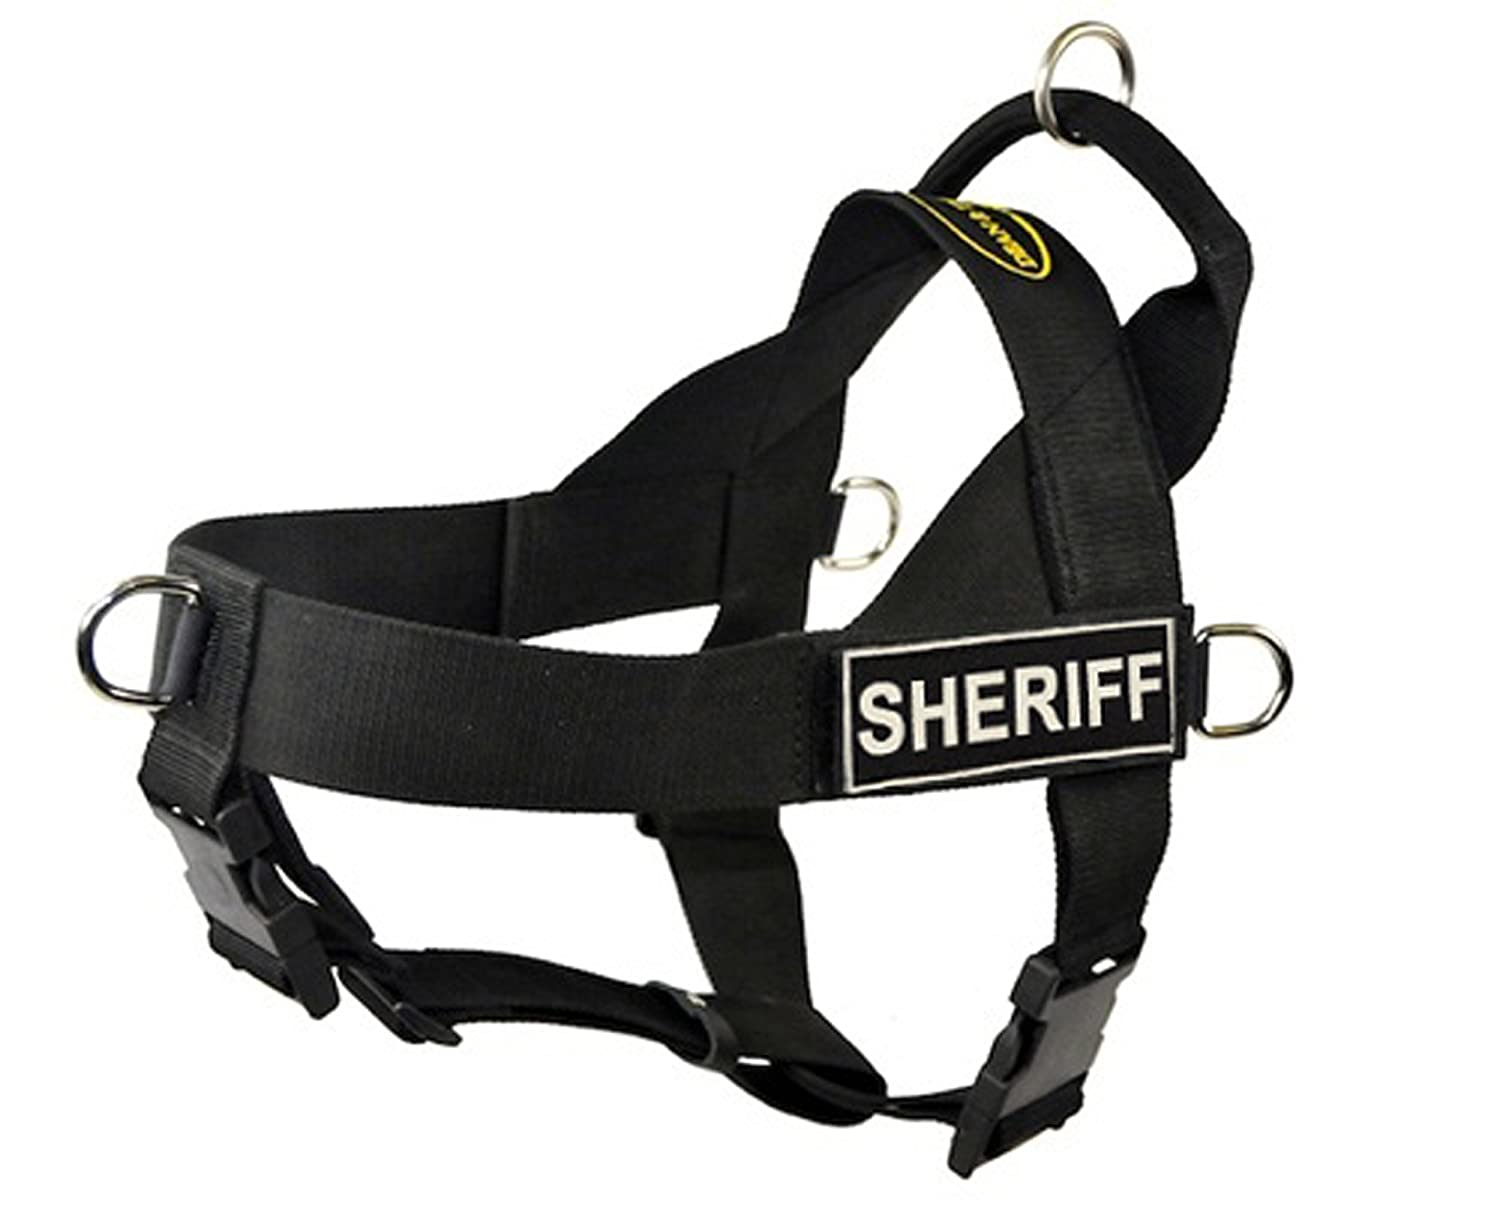 Dean & Tyler Universal No Pull Dog Harness, Sheriff, Black, X-Large, Fits Girth Size  91cm to 119cm